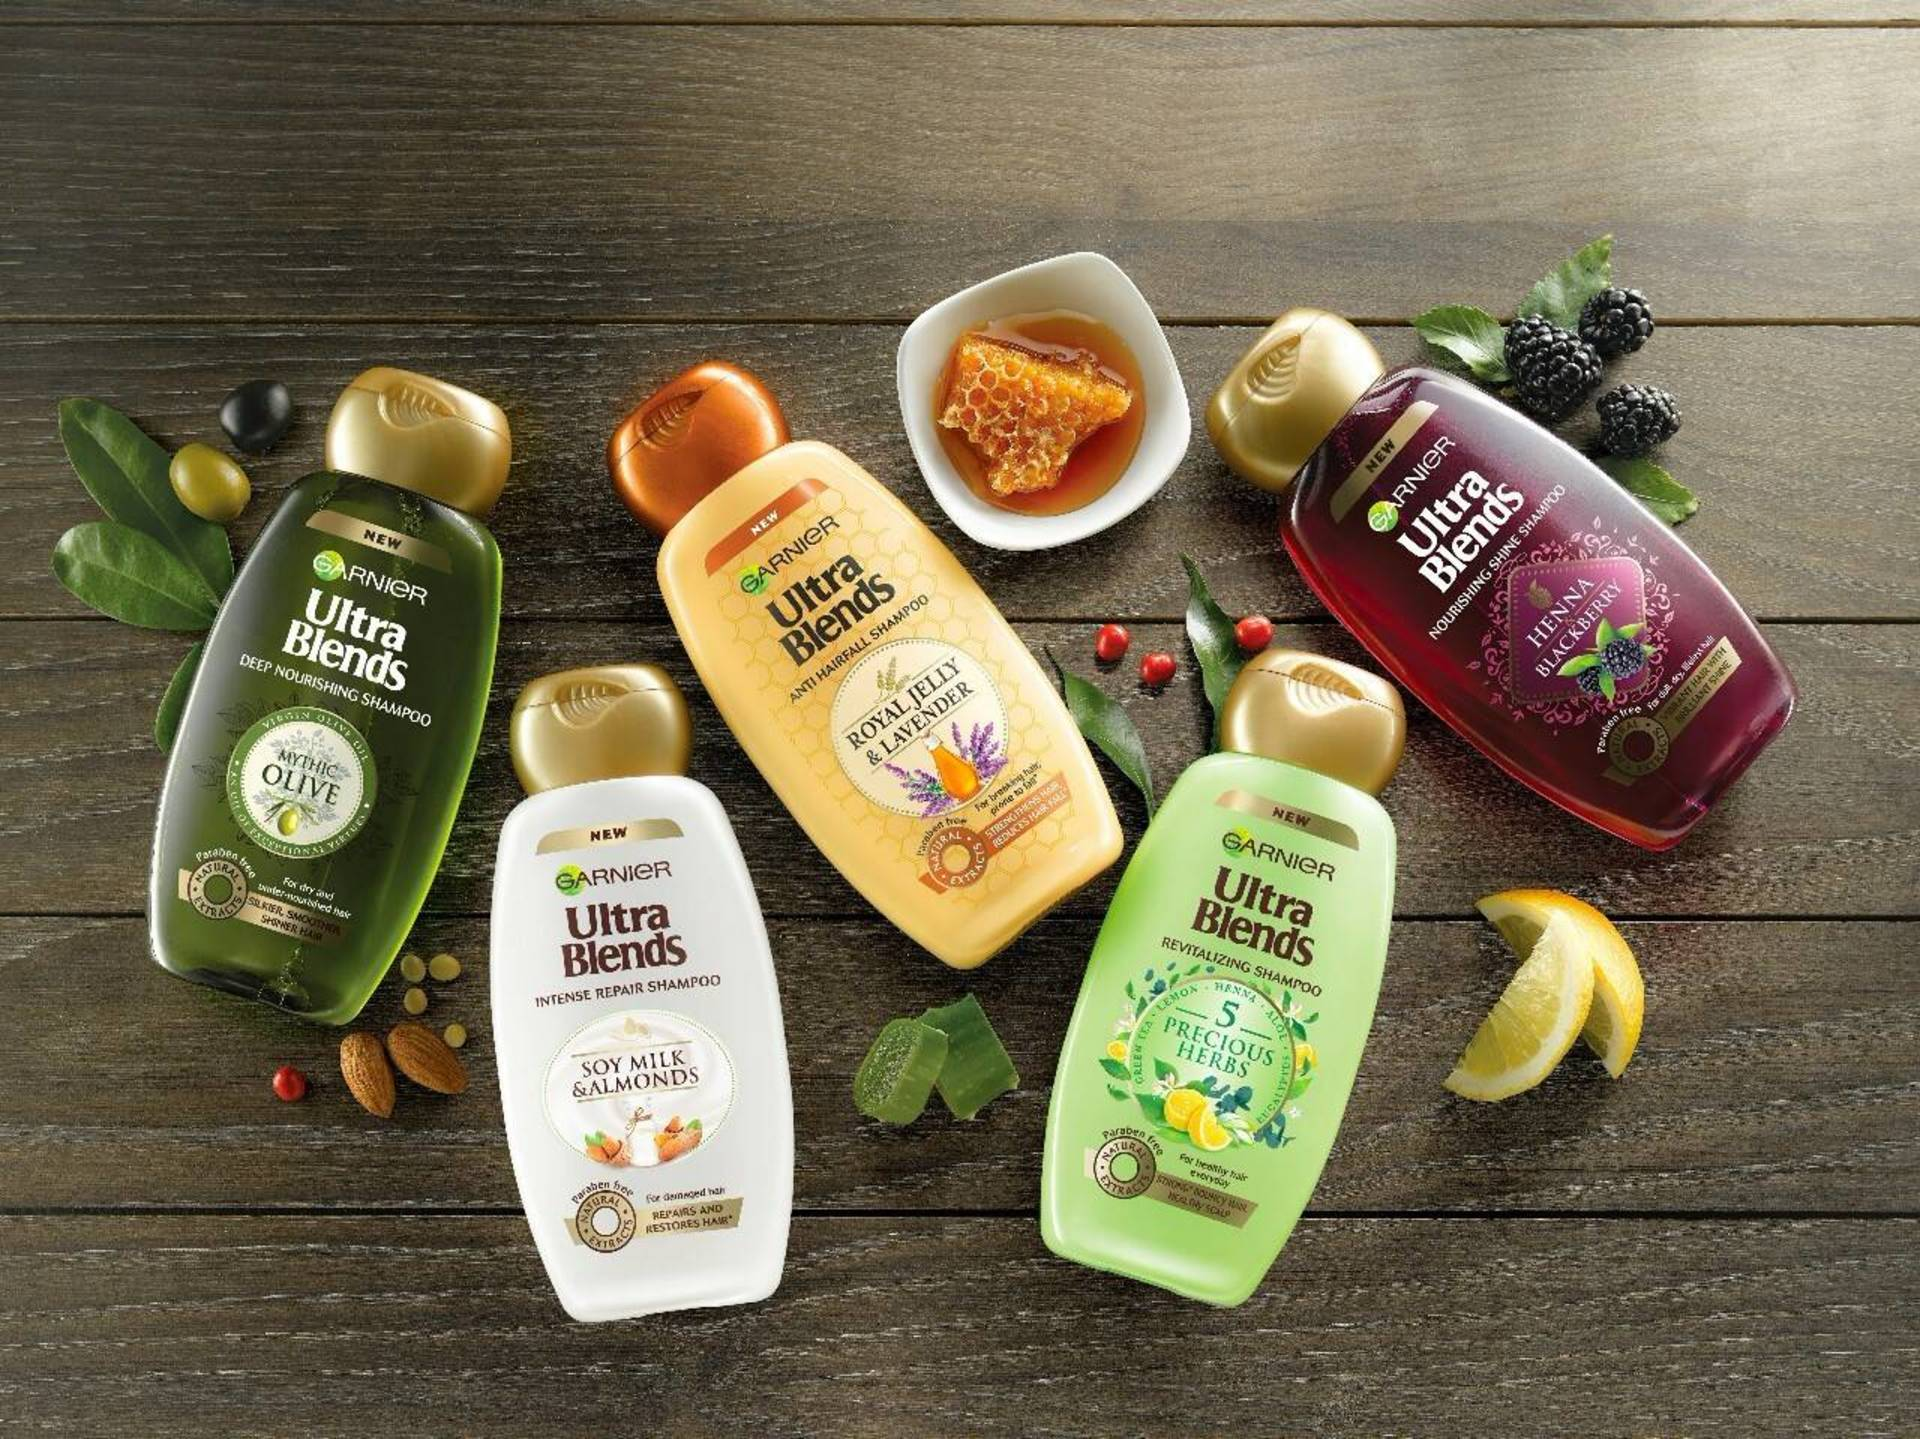 Garnier Ultra Blends image